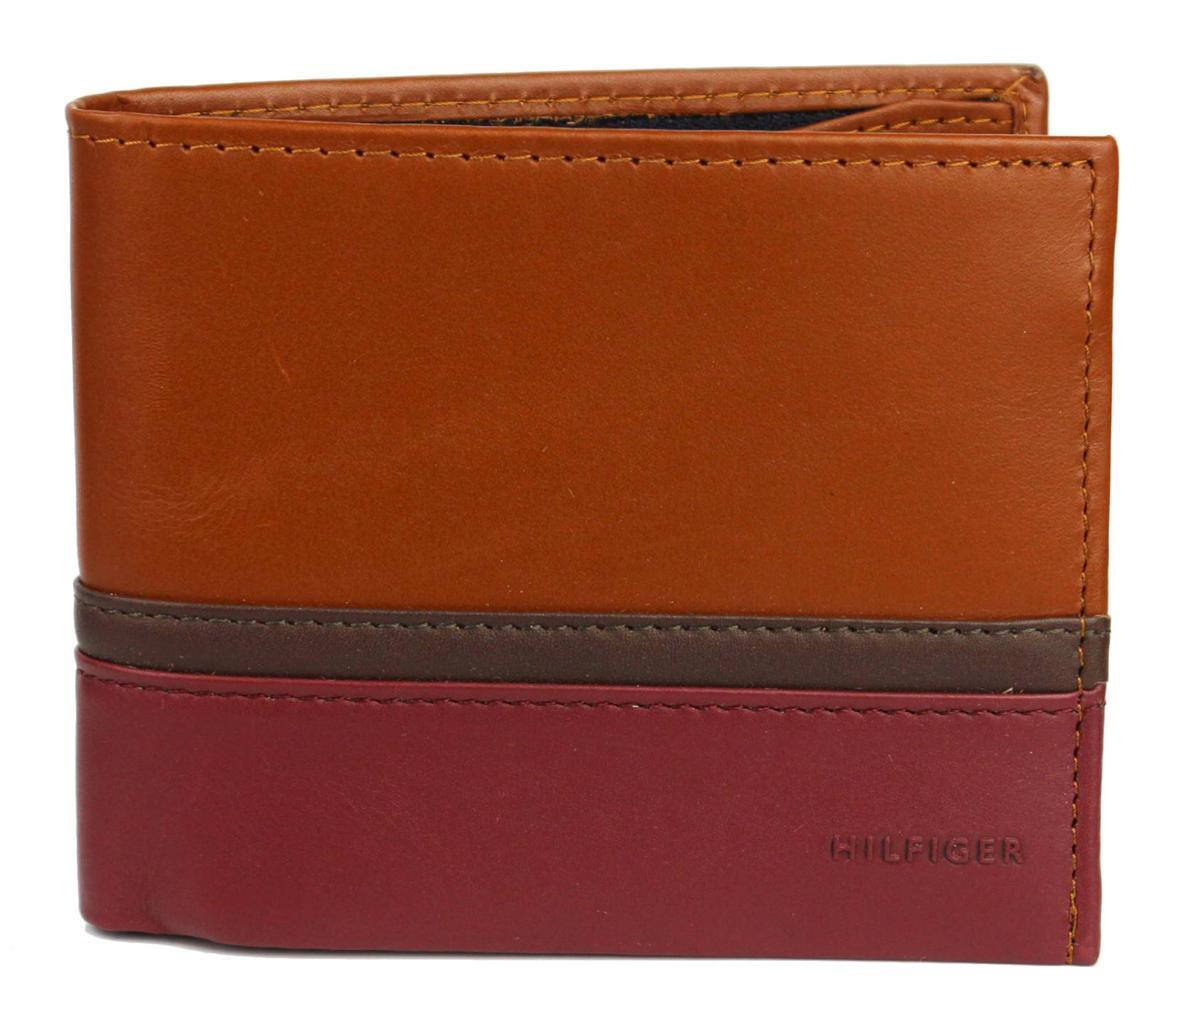 BRAND NEW TOMMY HILFIGER MEN'S LEATHER BILLFOLD WALLET SADDLE OXBLOOD 31TL13X041